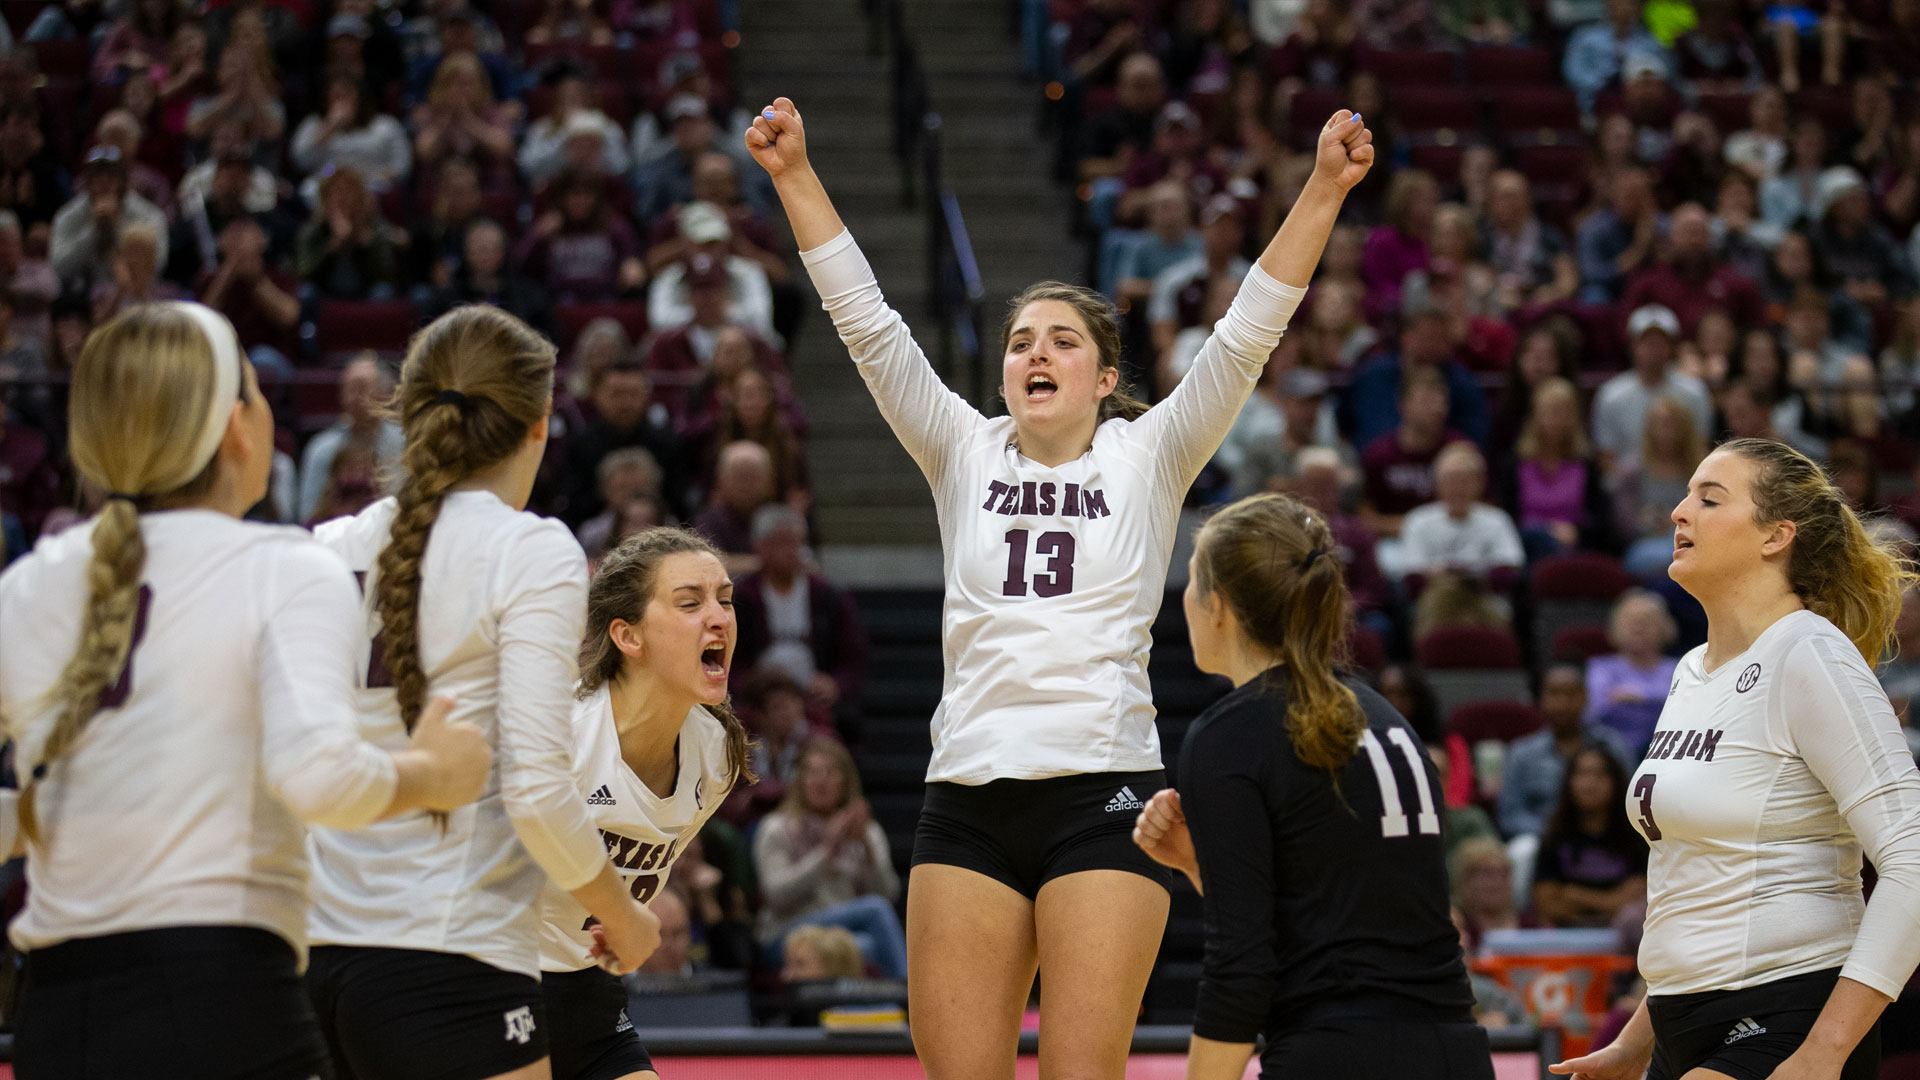 Allison Fields Volleyball Texas A M Athletics Home Of The 12th Man